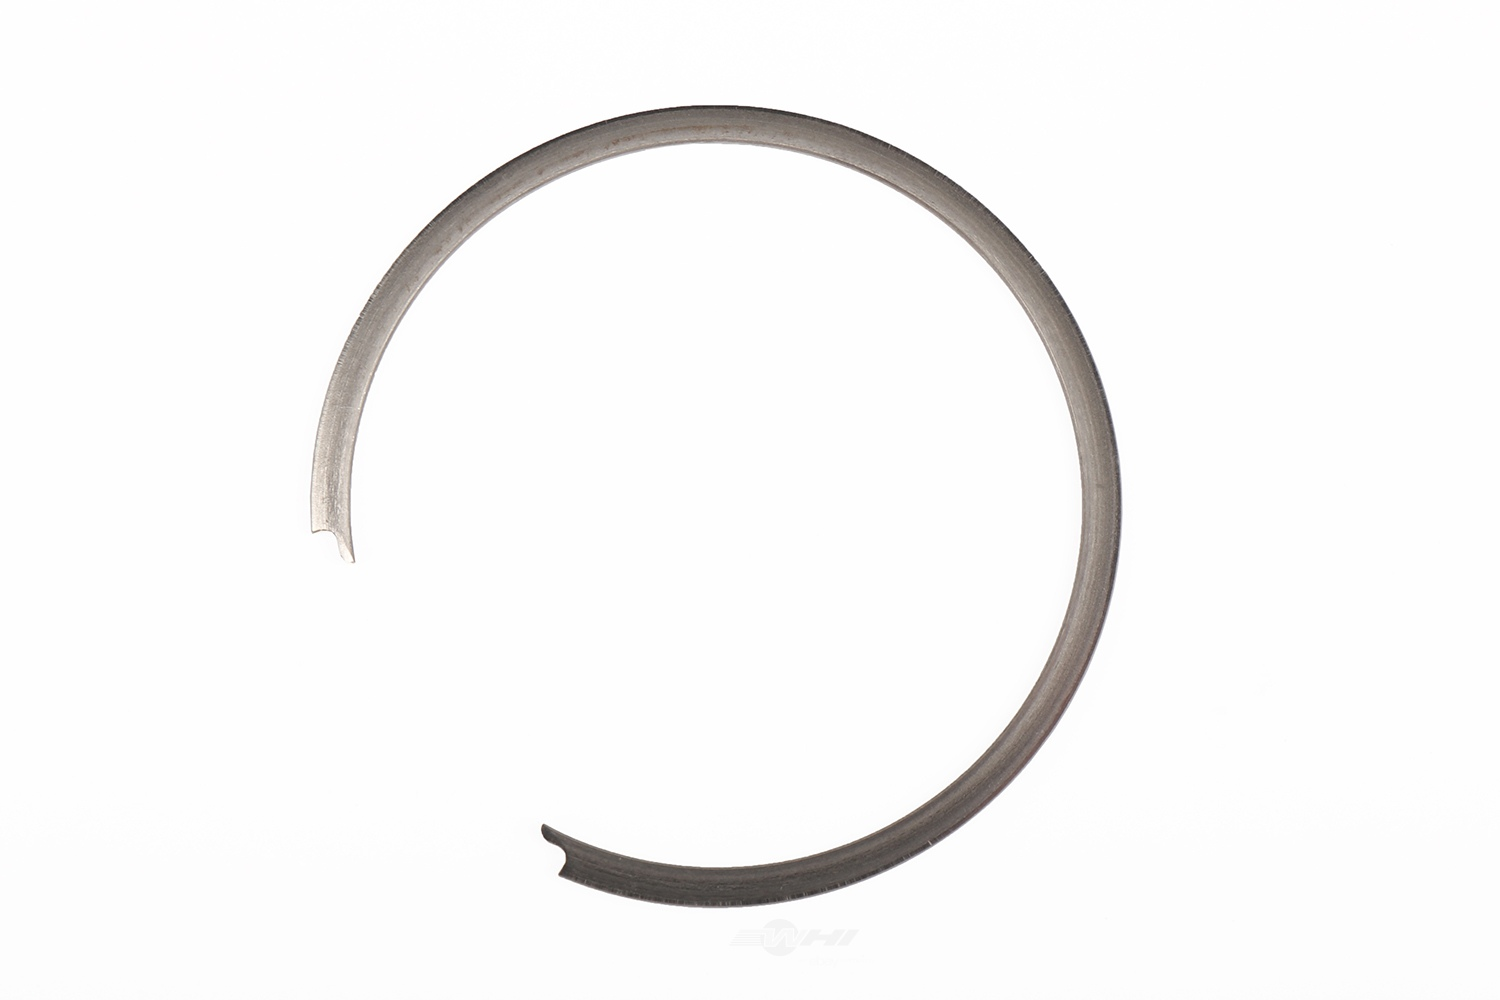 ACDELCO GM ORIGINAL EQUIPMENT - Automatic Transmission Torque Converter Seal Retaining Ring - DCB 24218963